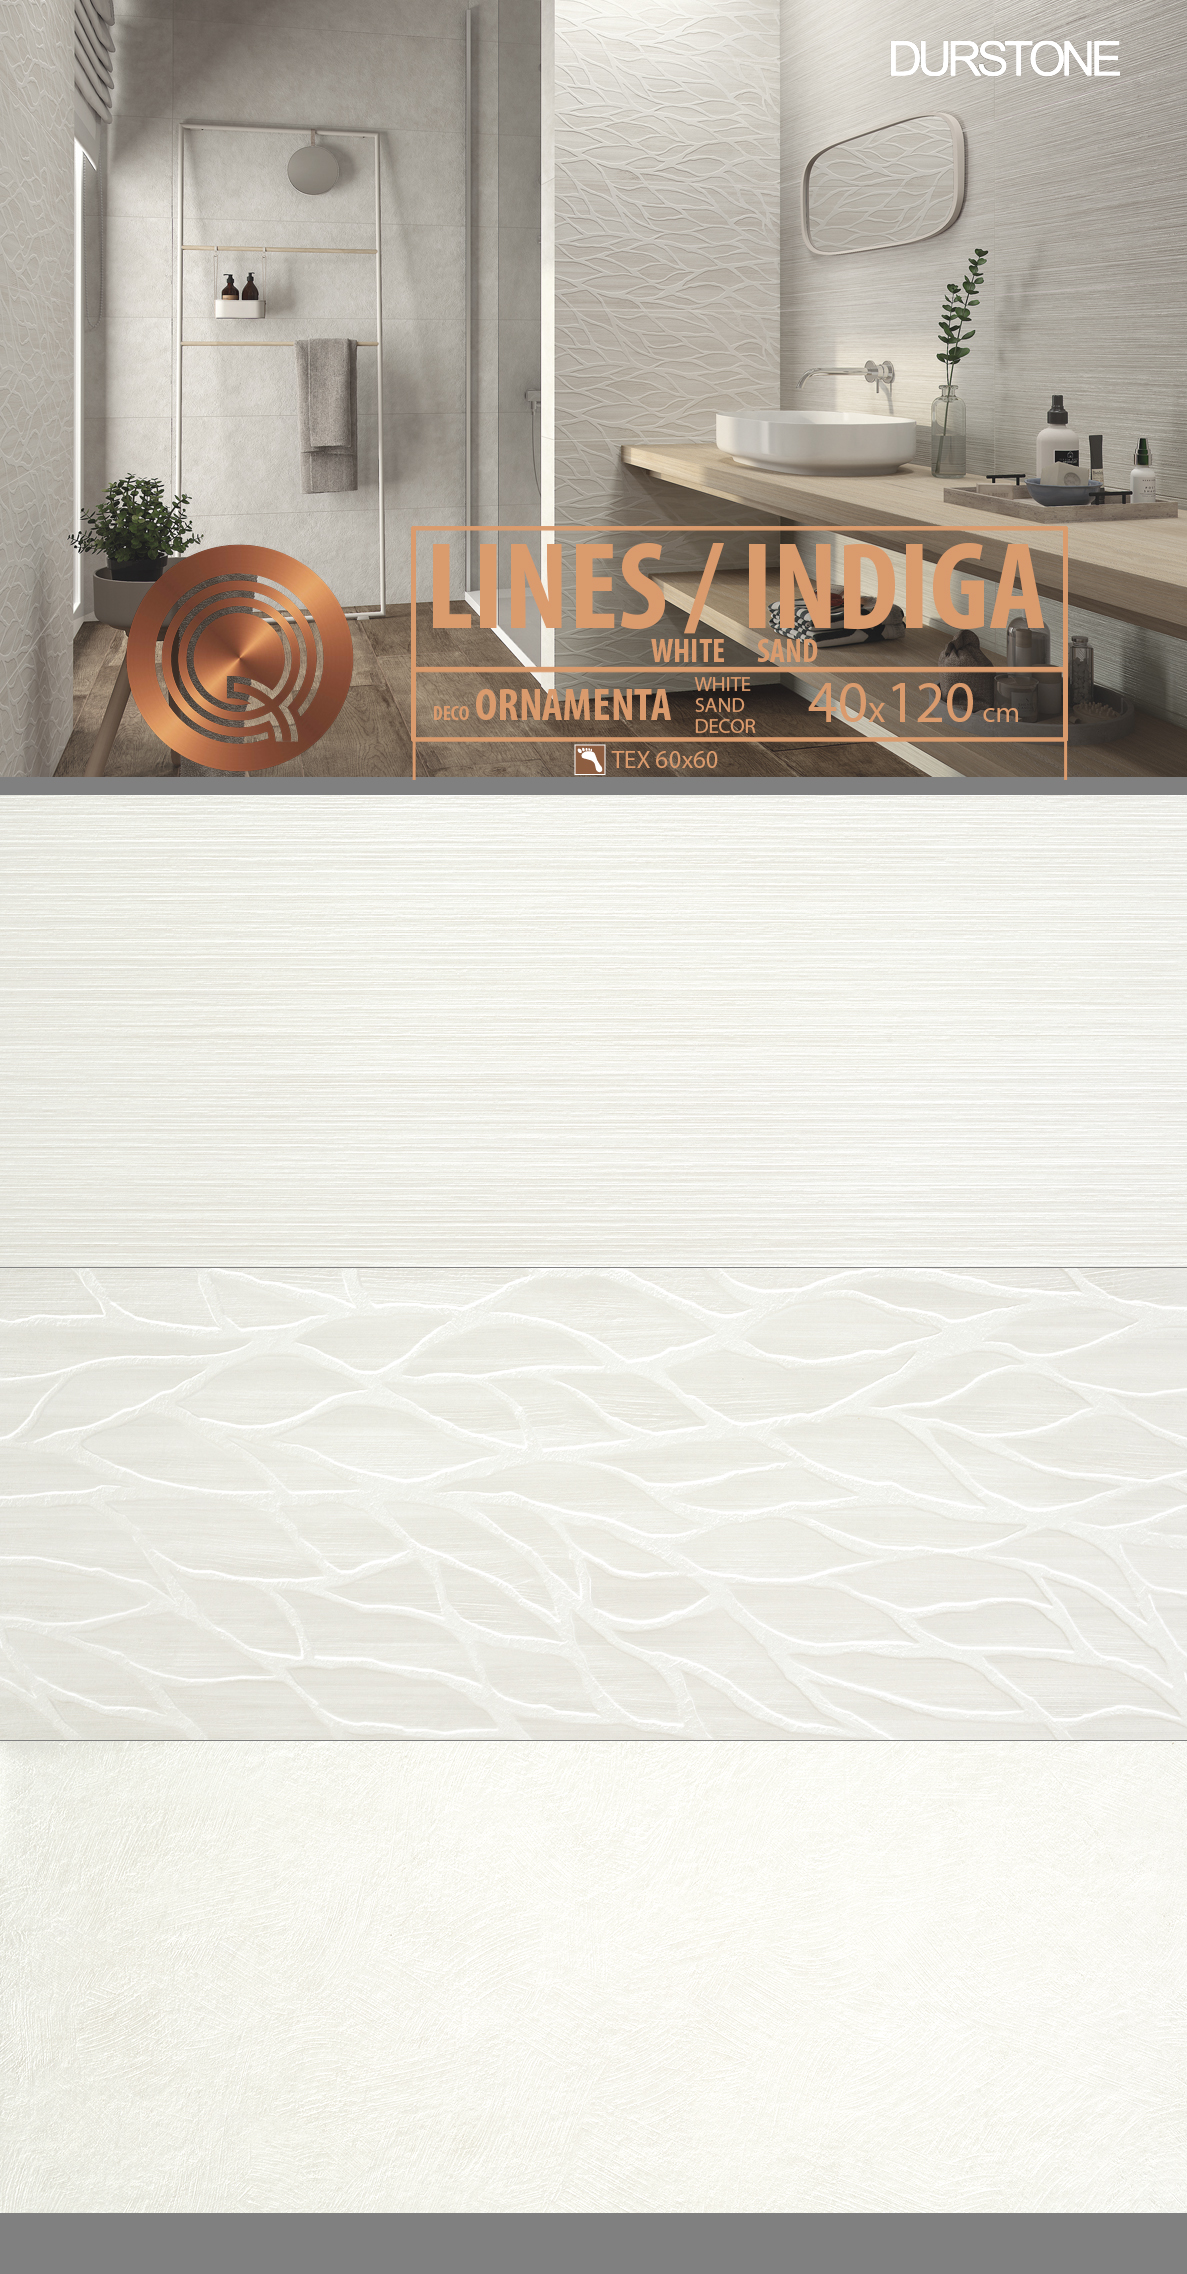 6047 RV PANEL MIX LINES / INDIGA ORNAMENTA WHITE COD. 6047